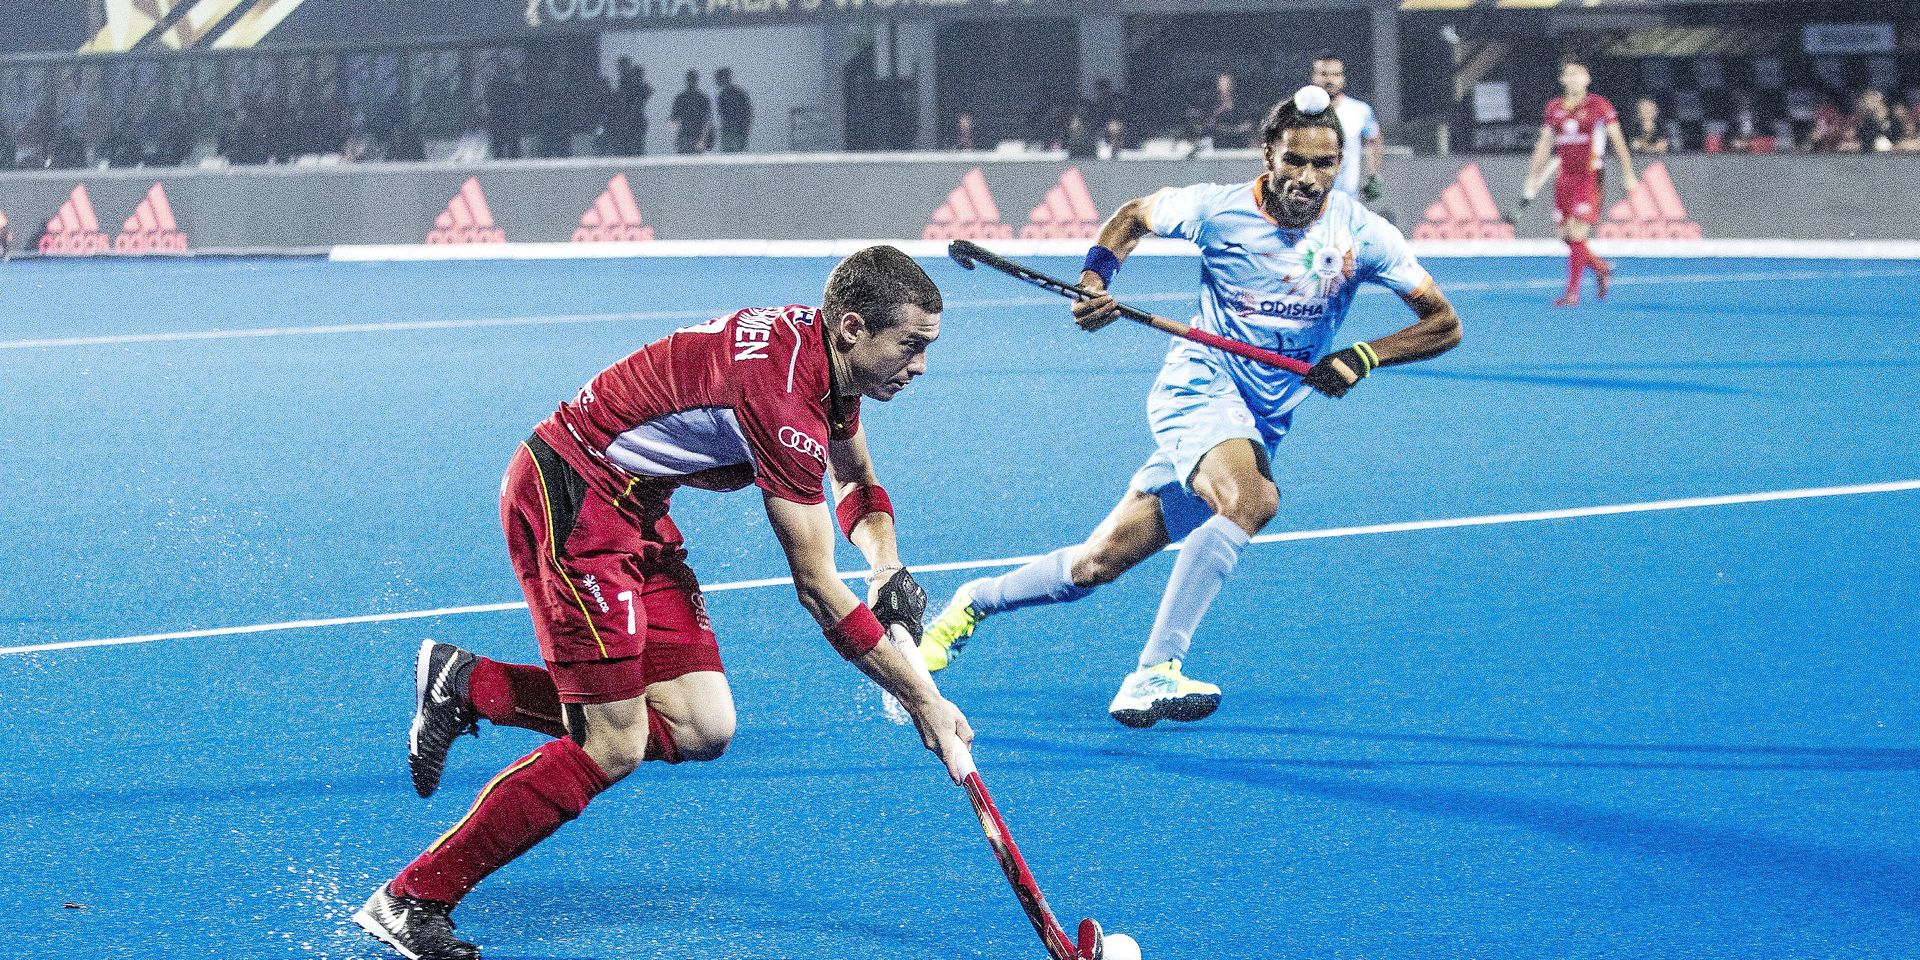 Belgium's John-John Dohmen (R) and India's Akashdeep Singh (L) pictured in action during a hockey game between Belgian national team the Red Lions and India, match 2/3 in group C in the first round of the World Cup, Sunday 02 December 2018 in the Kalinga Stadium in Bhubaneswar, India. BELGA PHOTO DANIEL TECHY